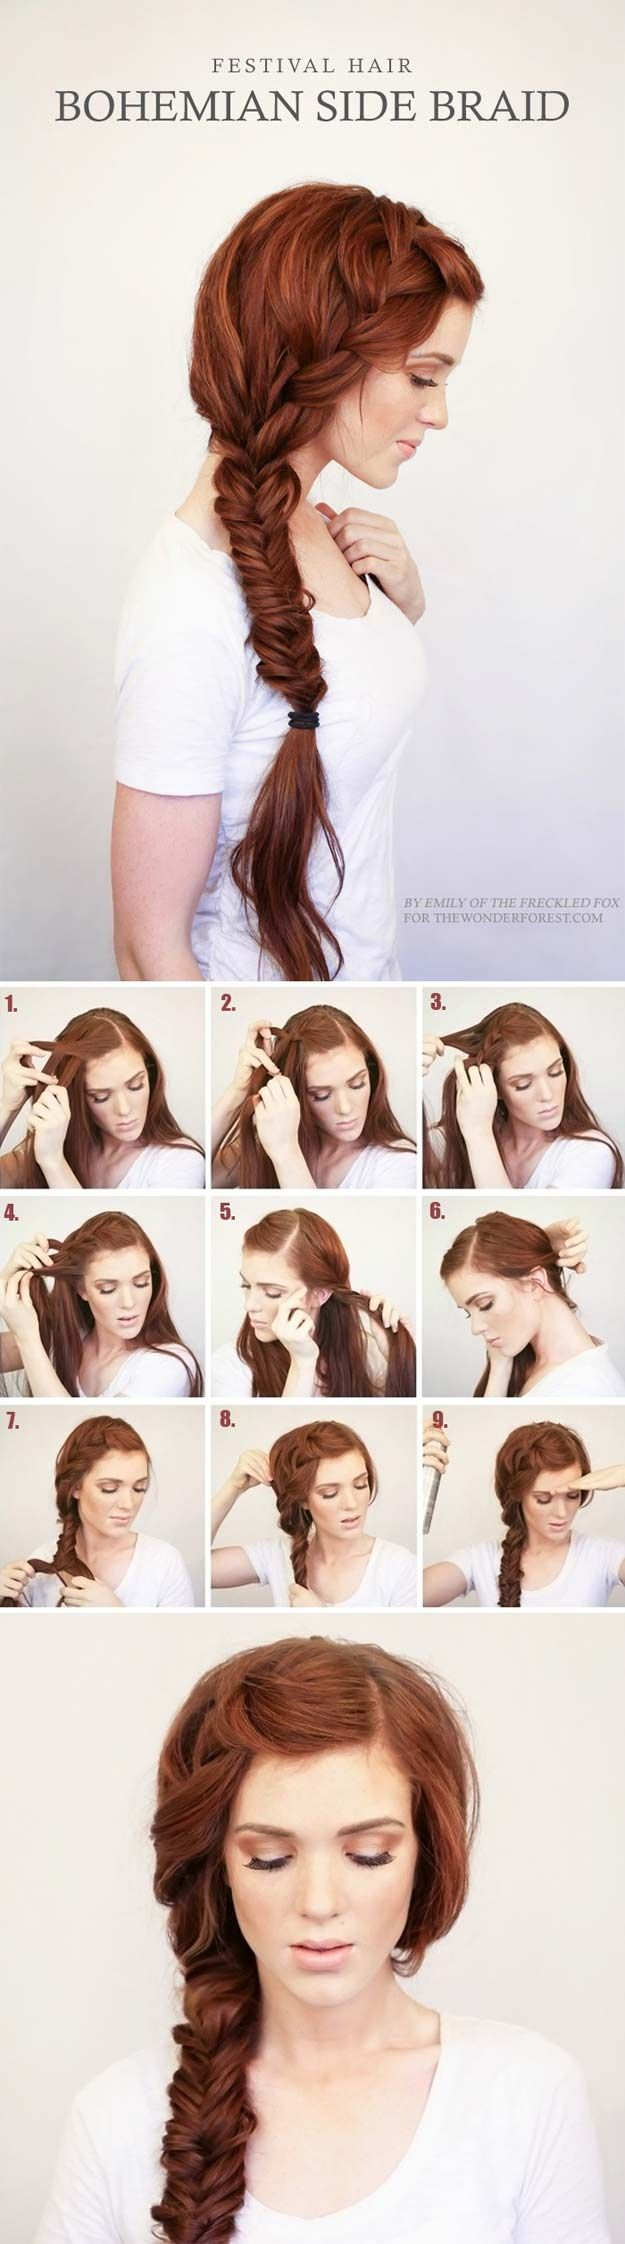 Best Hair Braiding Tutorials - Bohemian Side Braid Festival Hair Tutorial - Easy Step by Step Tutorials for Braids - How To Braid Fishtail, French Braids, Flower Crown, Side Braids, Cornrows, Updos - Cool Braided Hairstyles for Girls, Teens and Women - School, Day and Evening, Boho, Casual and Formal Looks http://diyprojectsforteens.com/hair-braiding-tutorials